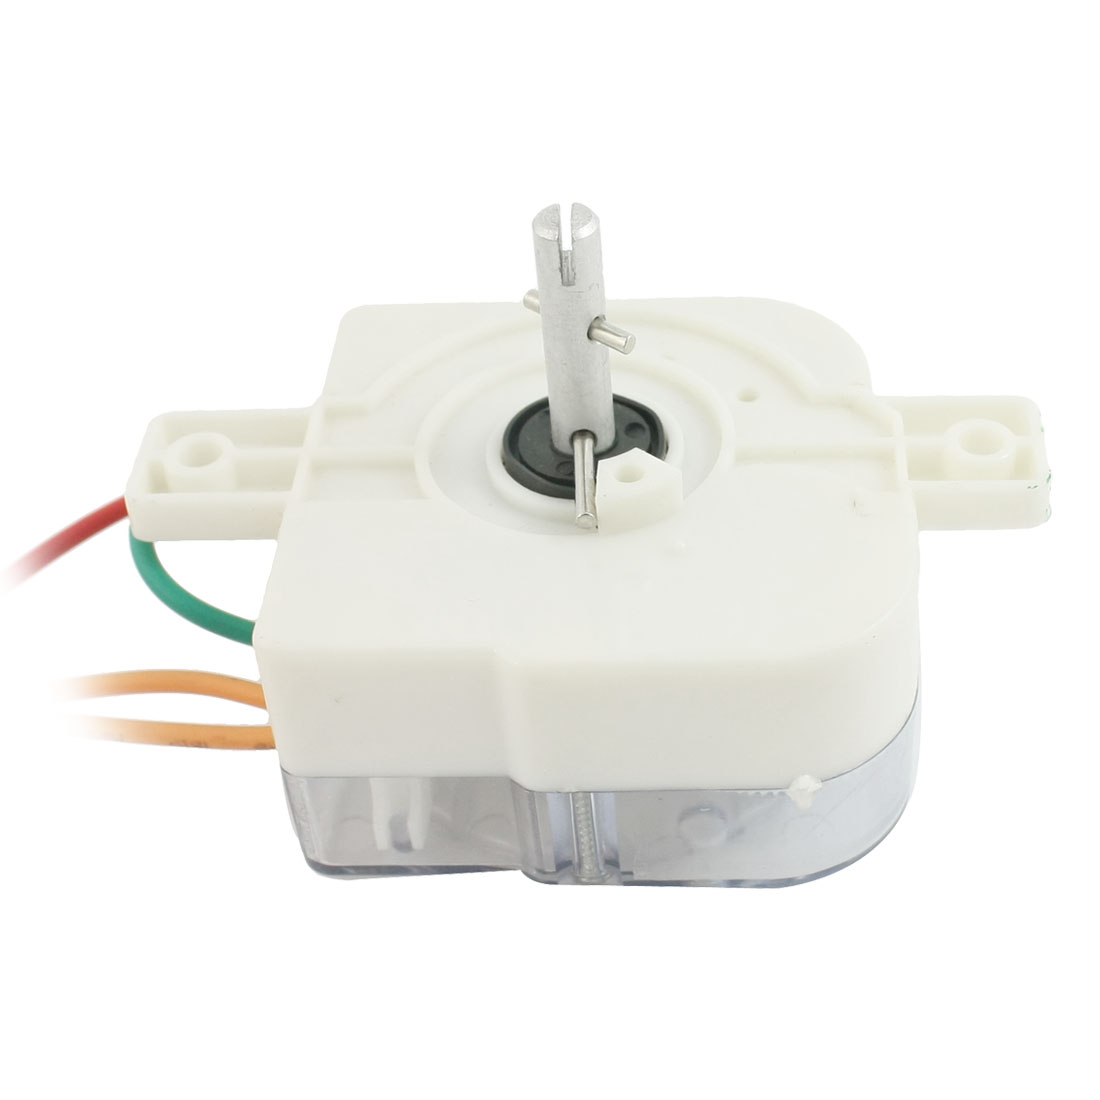 AC220V 3A 3 Wires 45 Degree Rotary Shaft Washing Machine Washer Timer White